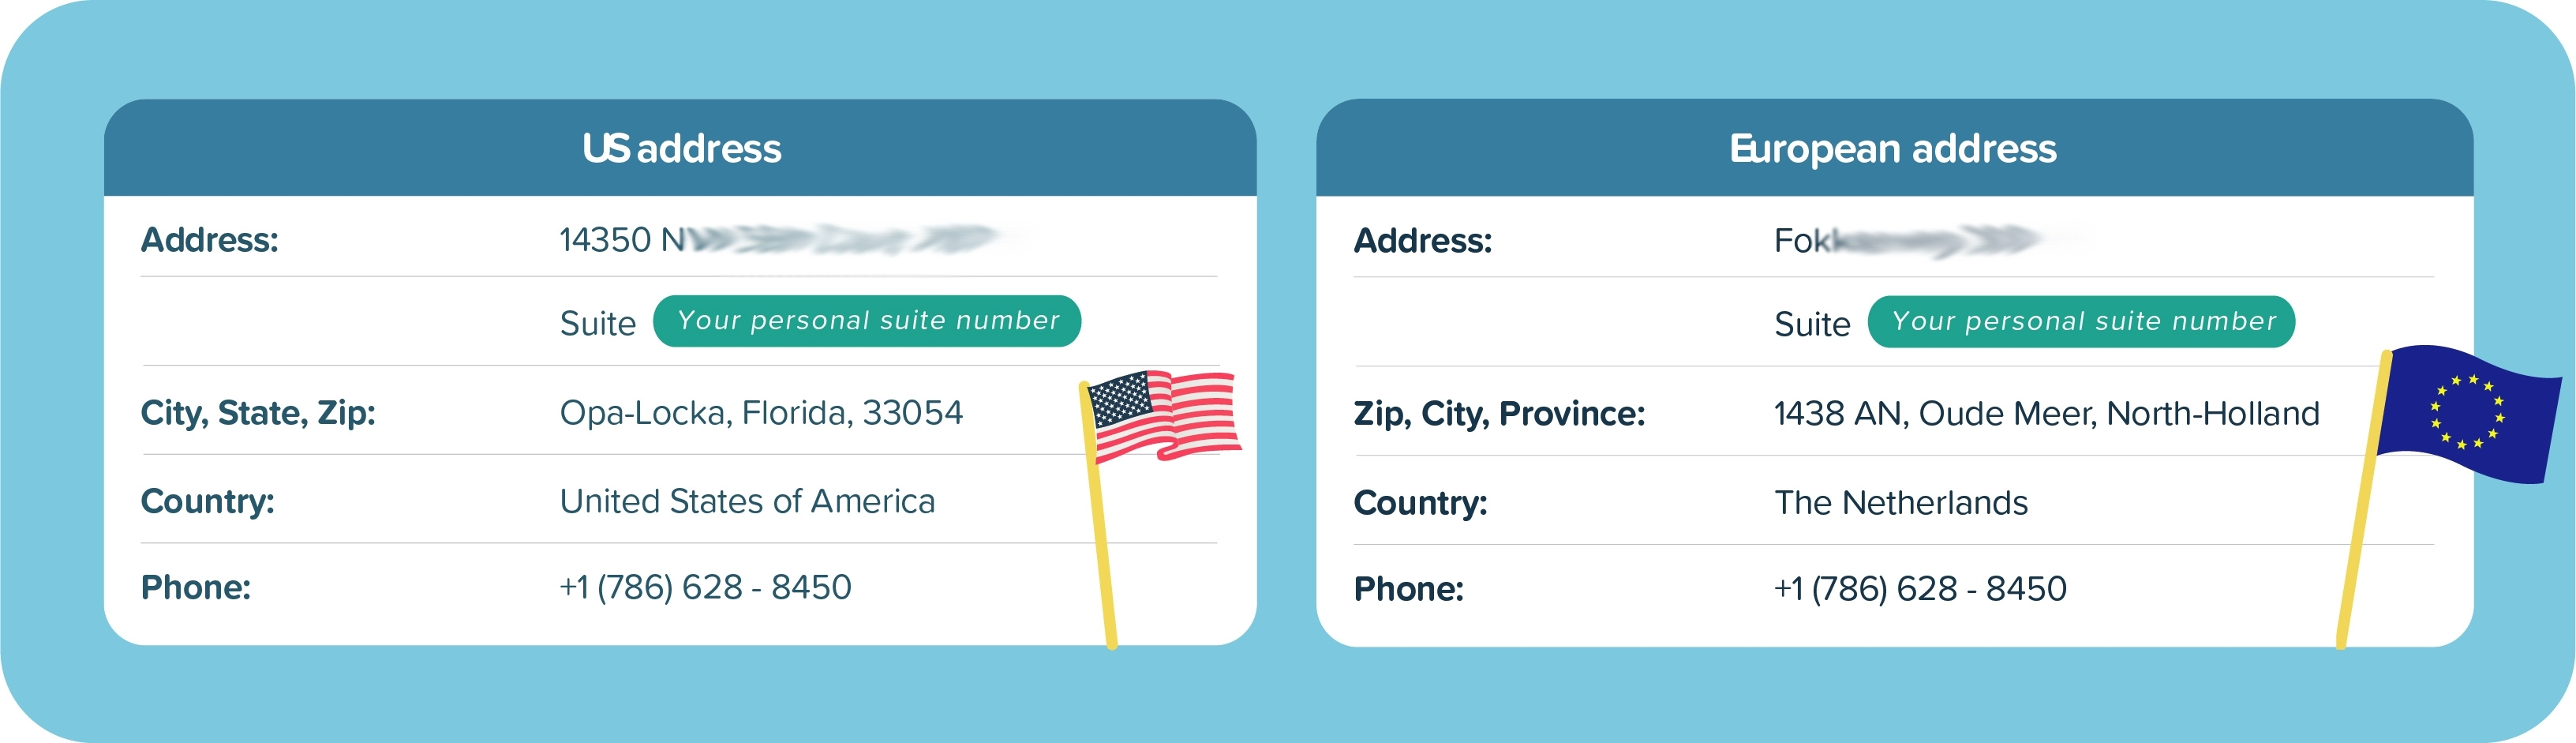 Personal US and European Address